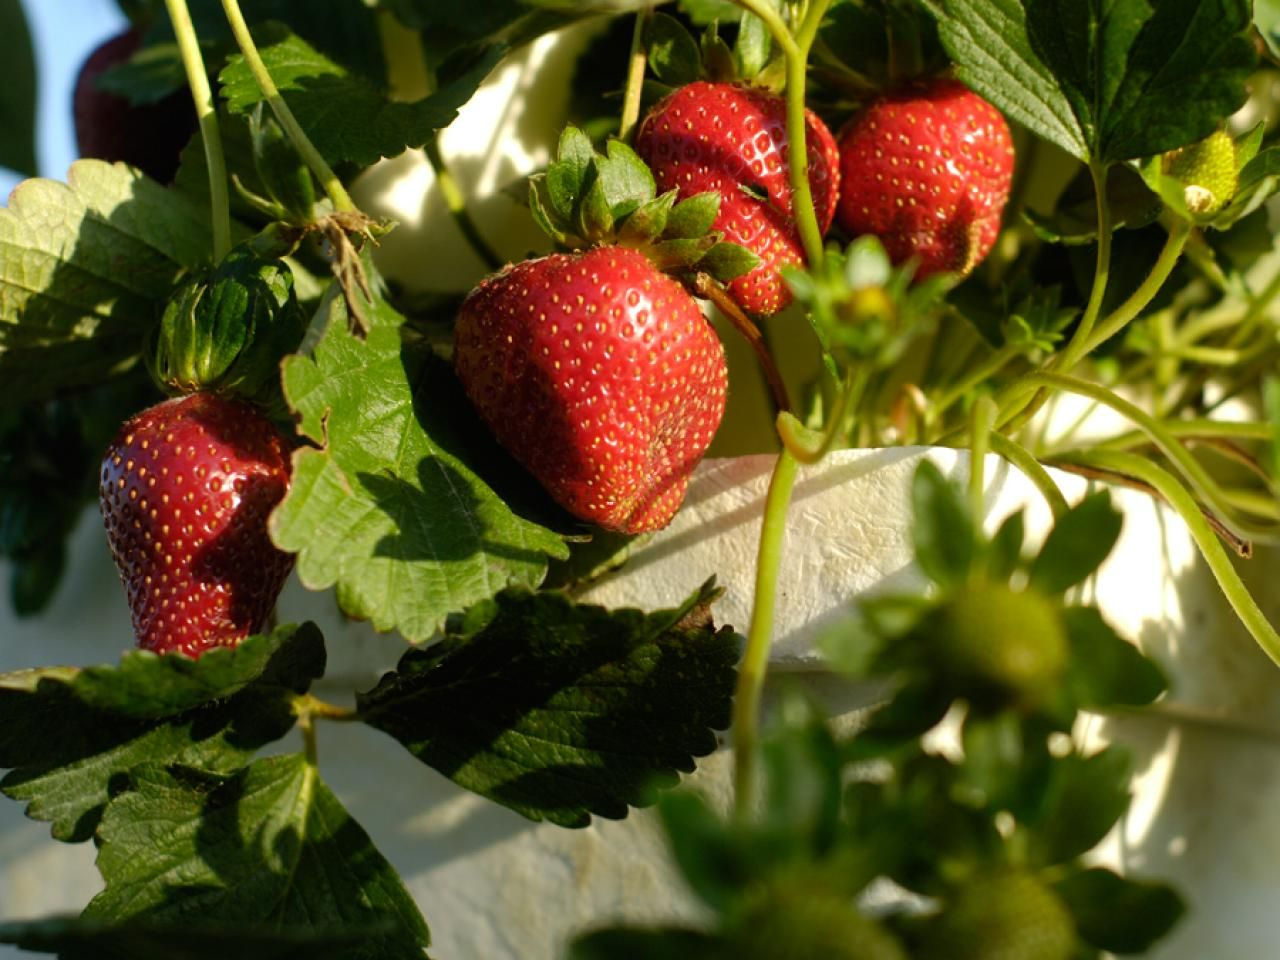 Companion Planting Is An Excellent Way To Improve Your Garden Some Plants Replenish Growing Strawberries Strawberry Plants Growing Strawberries In Containers